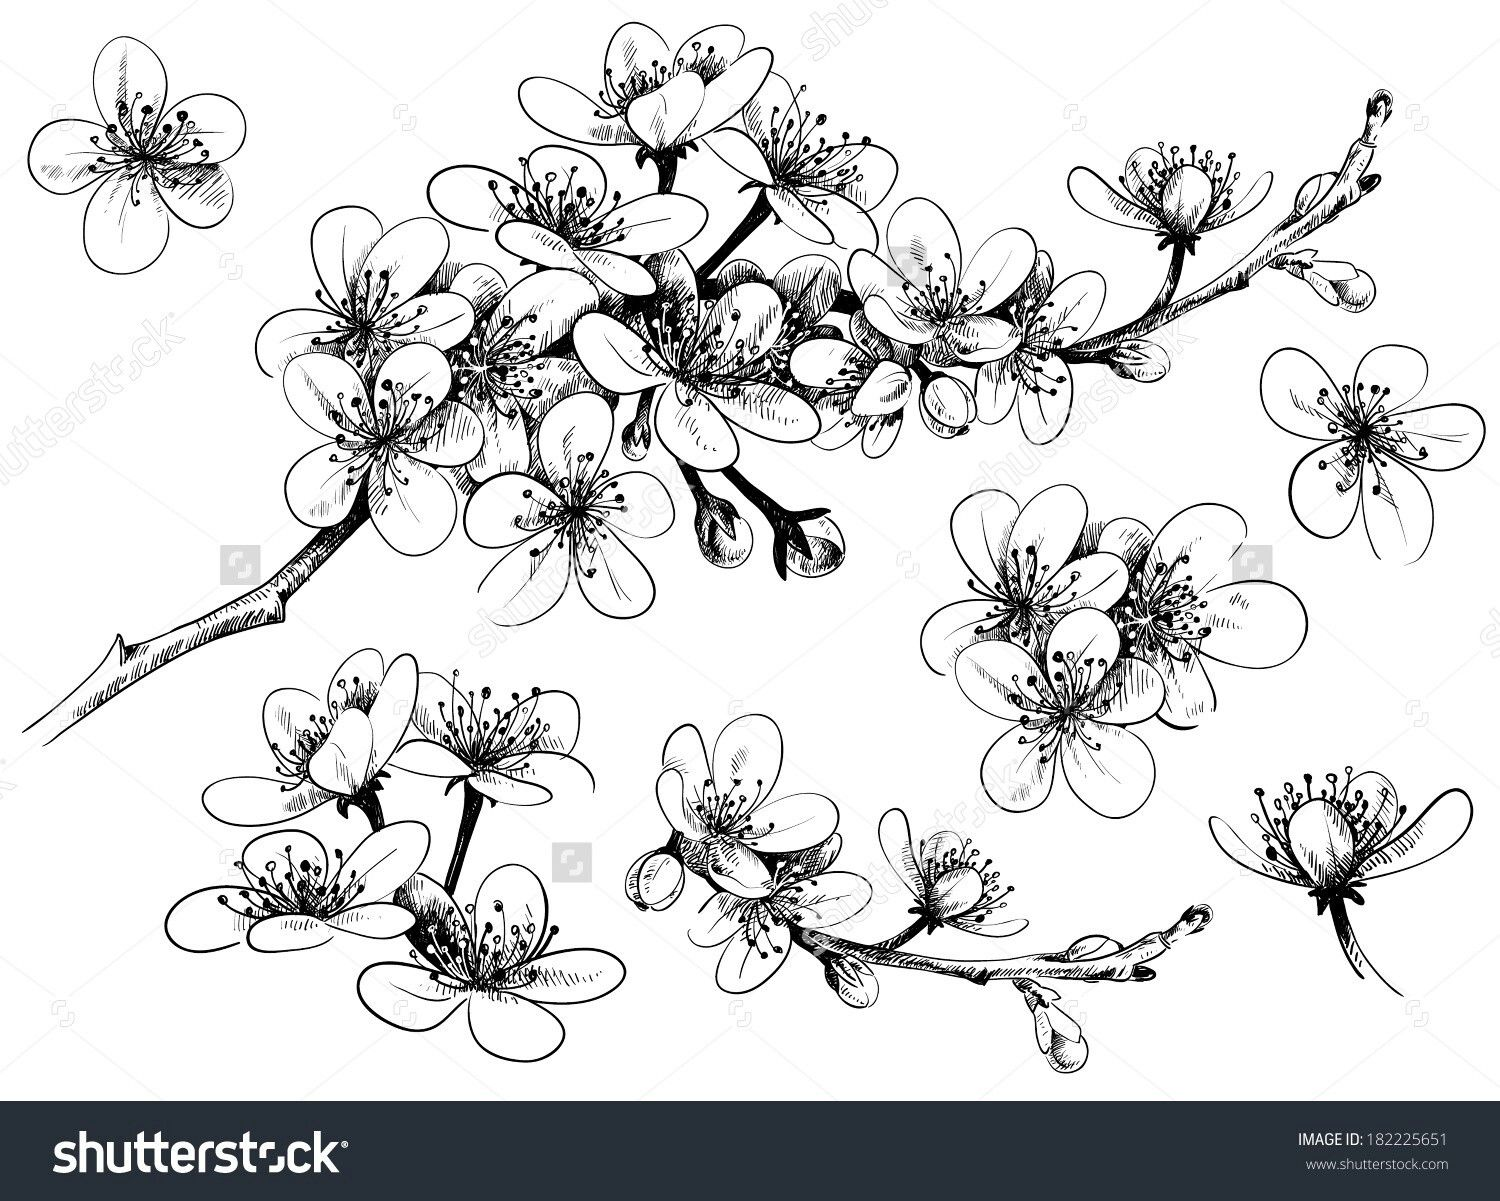 Uncategorized Drawing Cherry Blossom pin by tanya anderson on tattoos i like pinterest cherry see a rich collection of stock images vectors or photos for apple drawing you can buy shutterstock explore quality photo